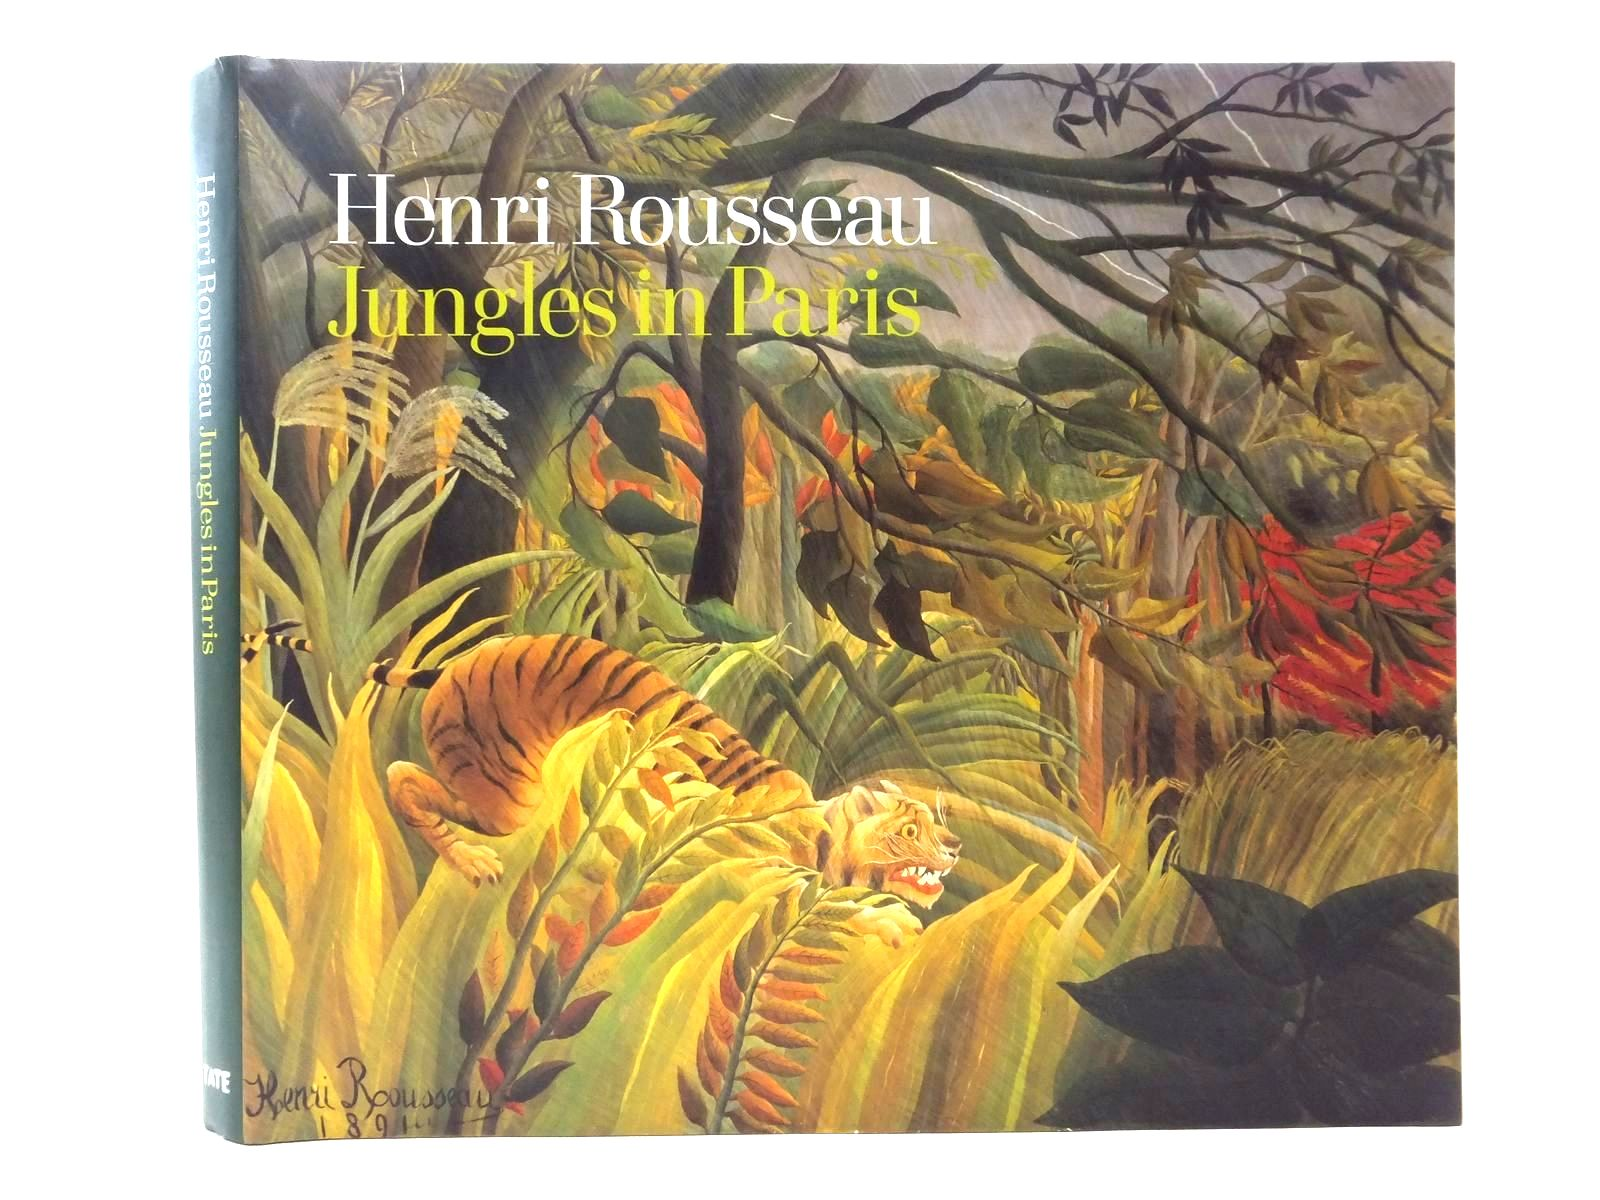 Photo of HENRI ROUSSEAU: JUNGLES IN PARIS written by Morris, Frances<br />Green, Christopher illustrated by Rousseau, Henri published by Tate Publishing (STOCK CODE: 1815058)  for sale by Stella & Rose's Books